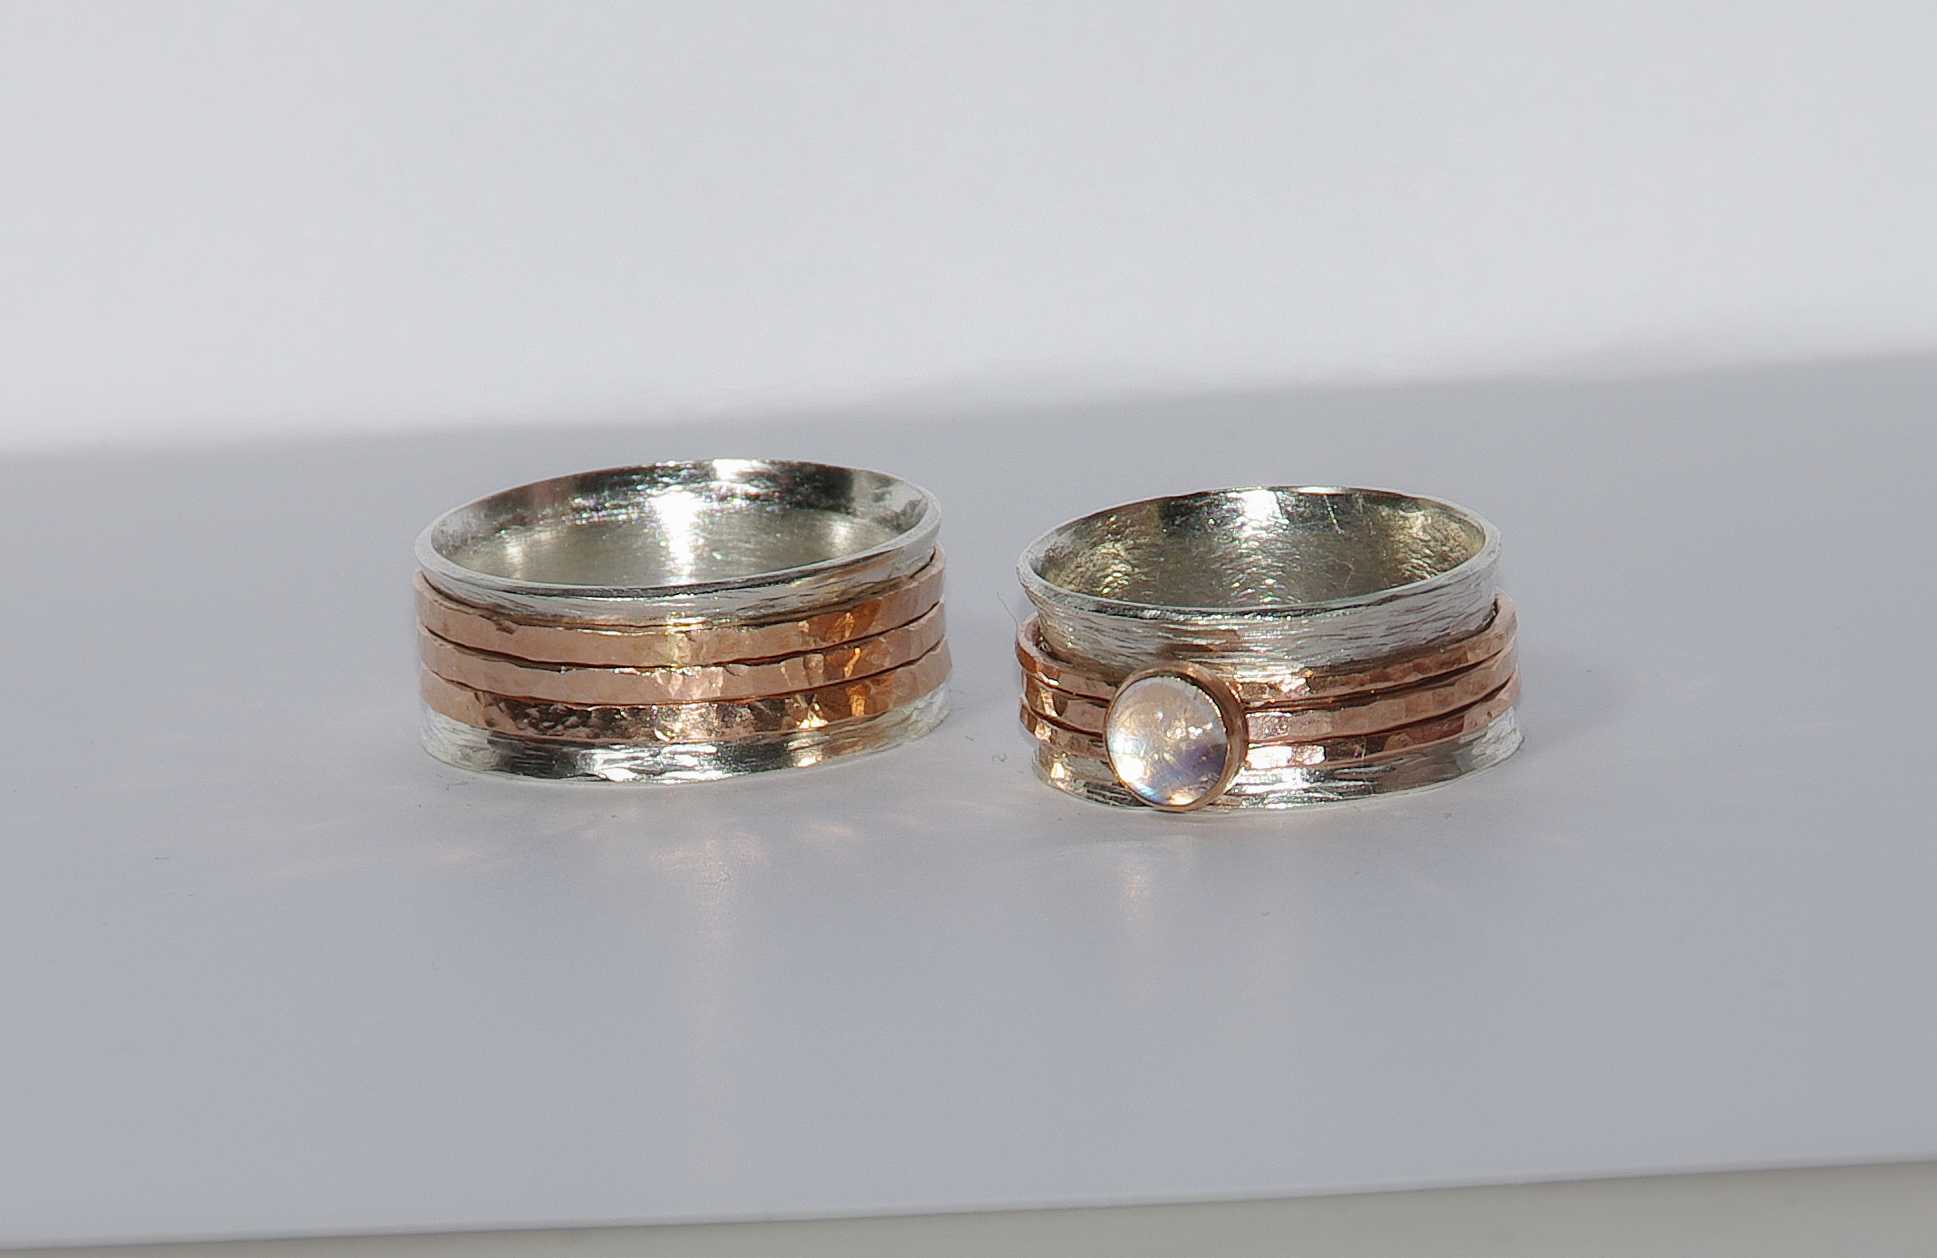 personalized unique wedding bands custom engraved words inside